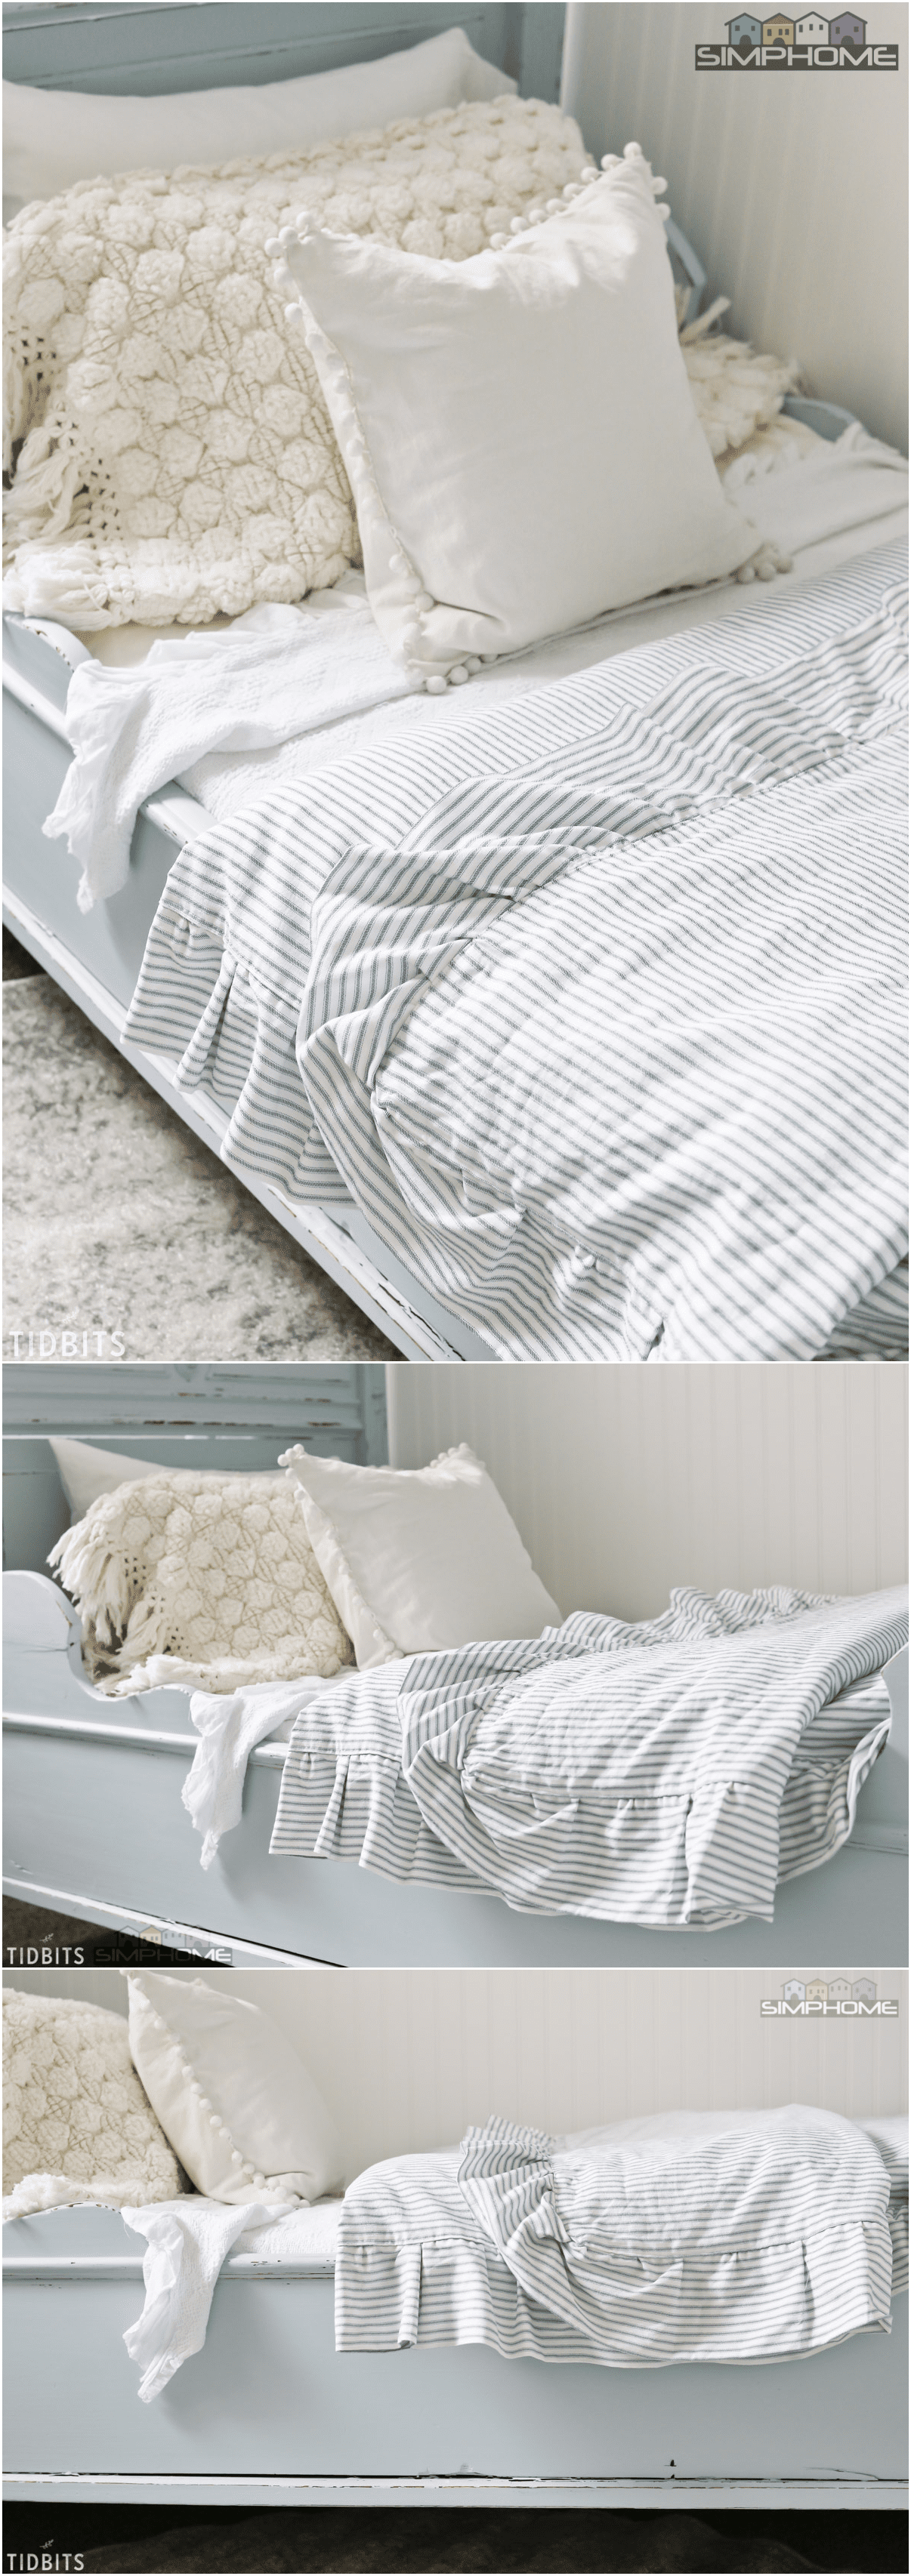 7.DIY Ruffled Duvet Cover via simphome.com